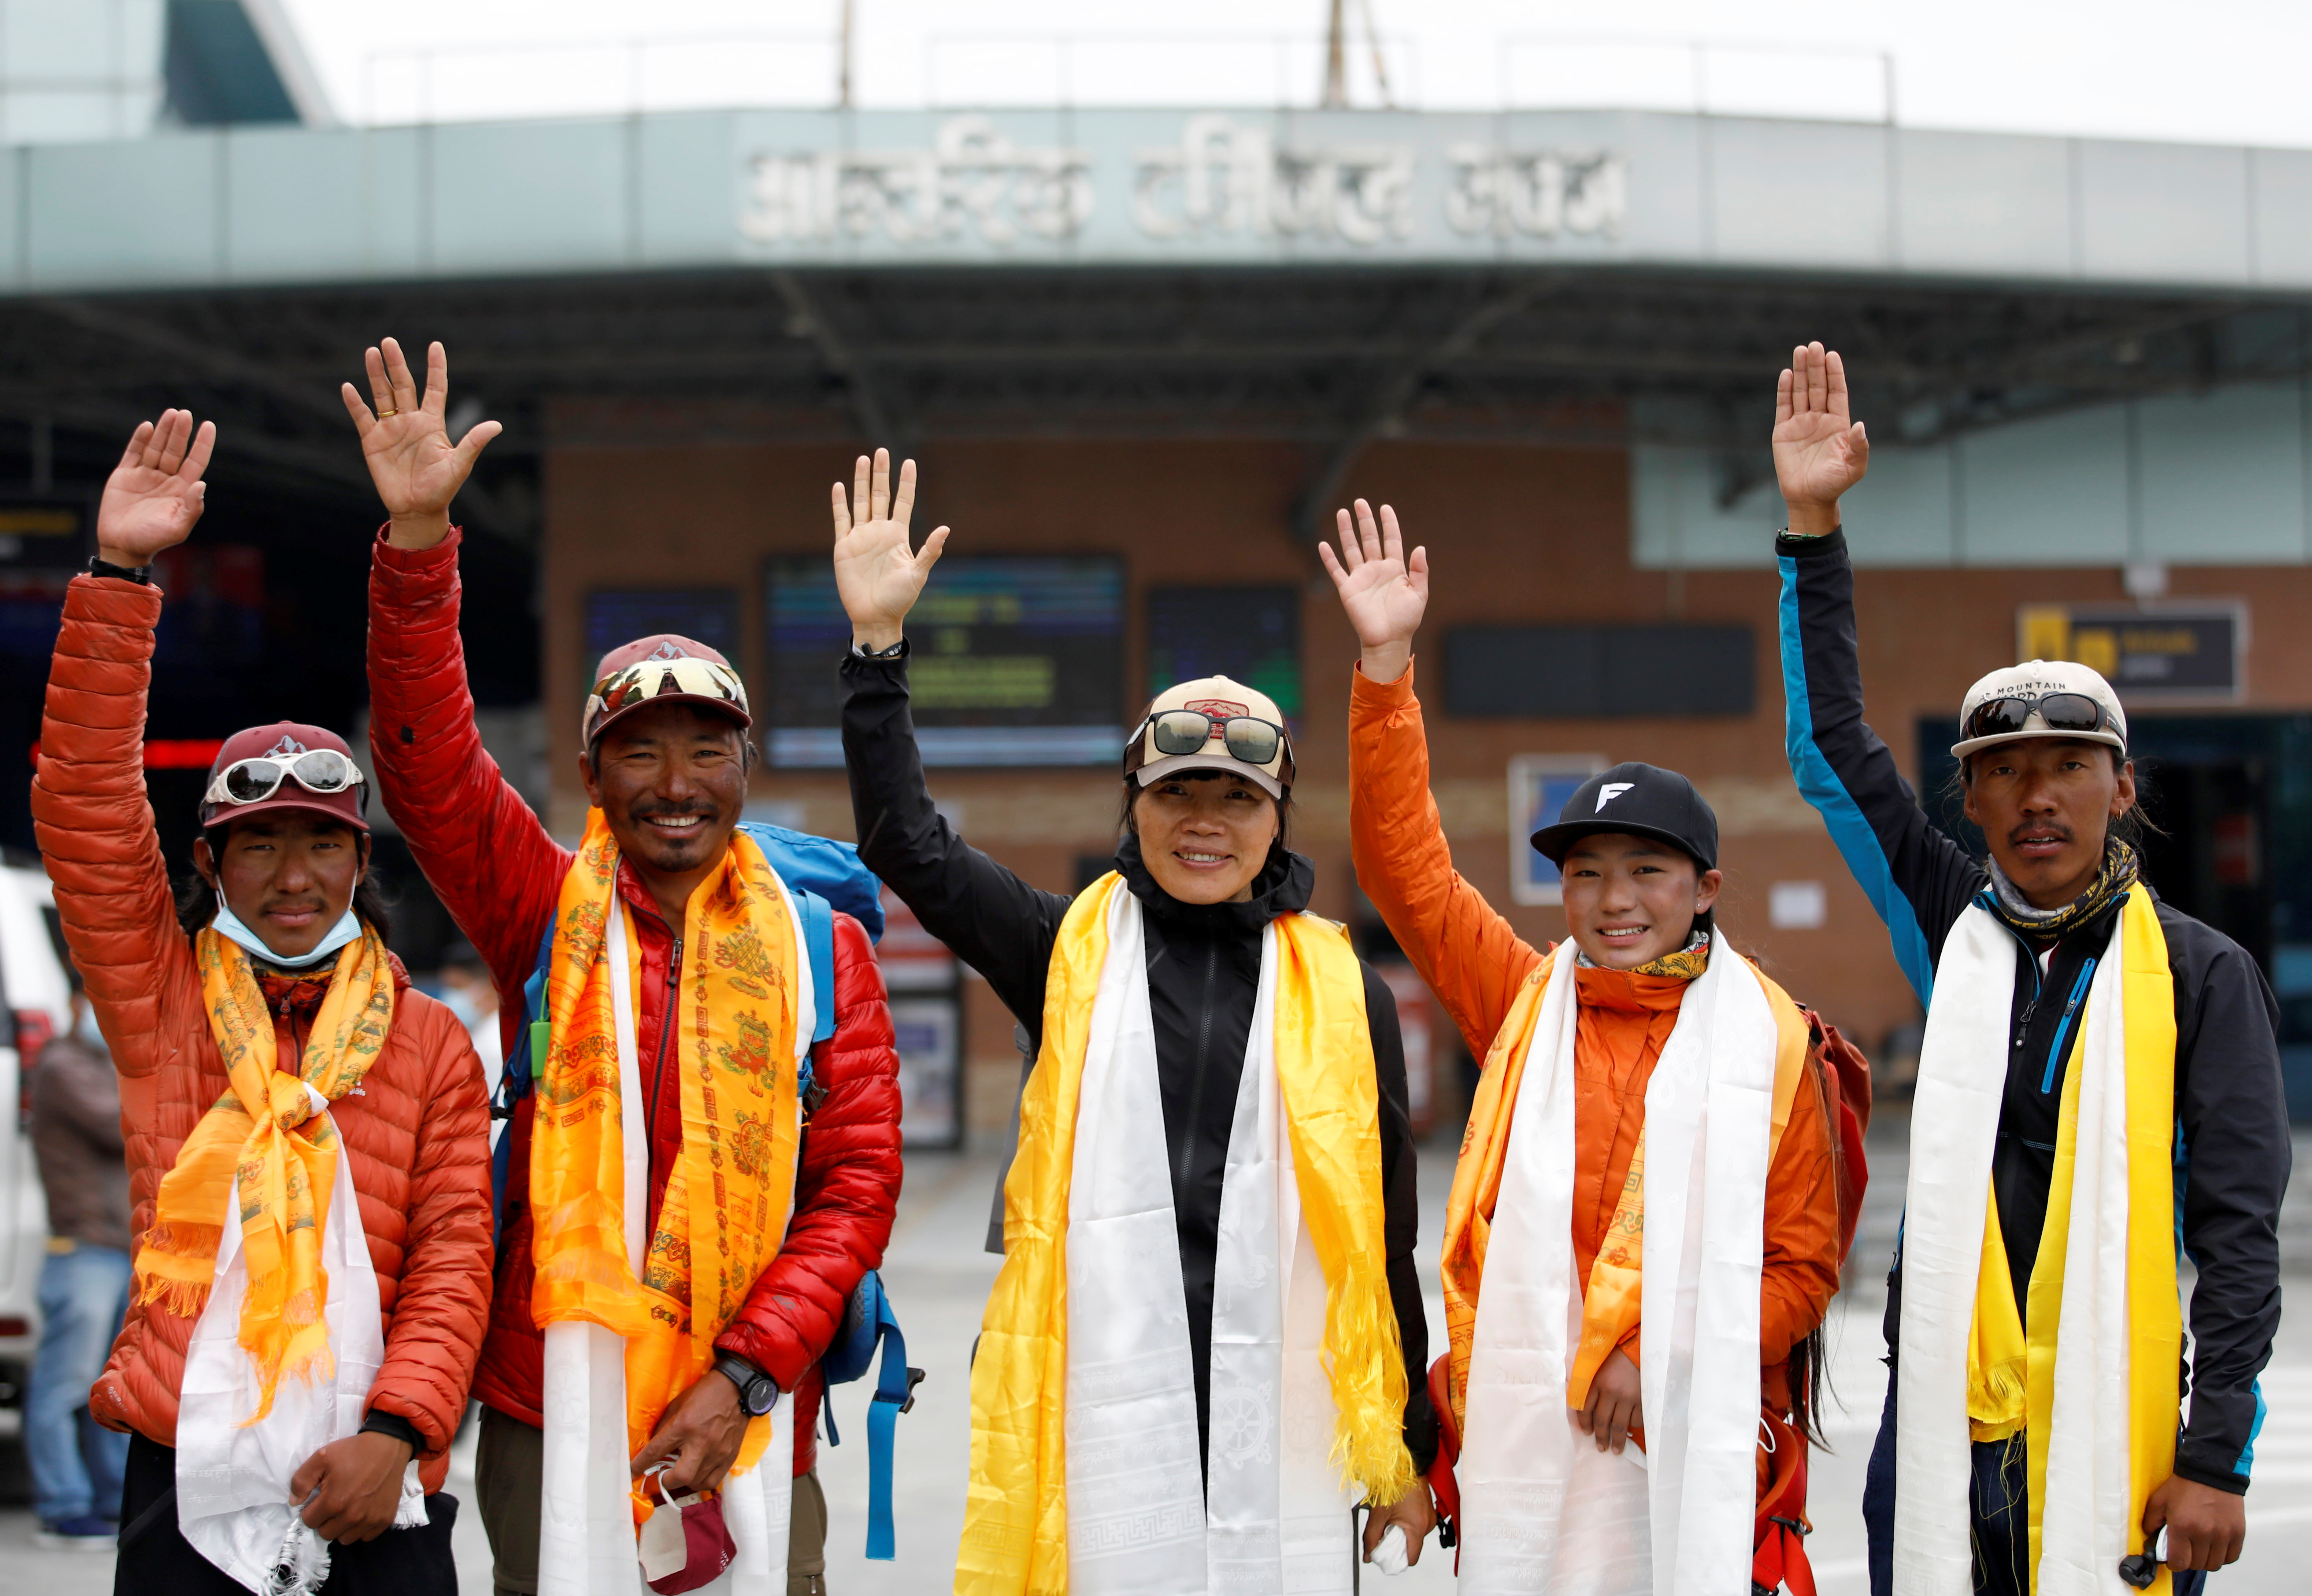 Hong Kong's Tsang Yin-Hung, 45, (C), who scaled Mount Everest in less than 26 hours, the shortest time taken by any woman after starting from the base camp, waves for a picture along with her team members, upon her arrival after climbing Everest, in Kathmandu, Nepal May 30, 2021. REUTERS/Navesh Chitrakar